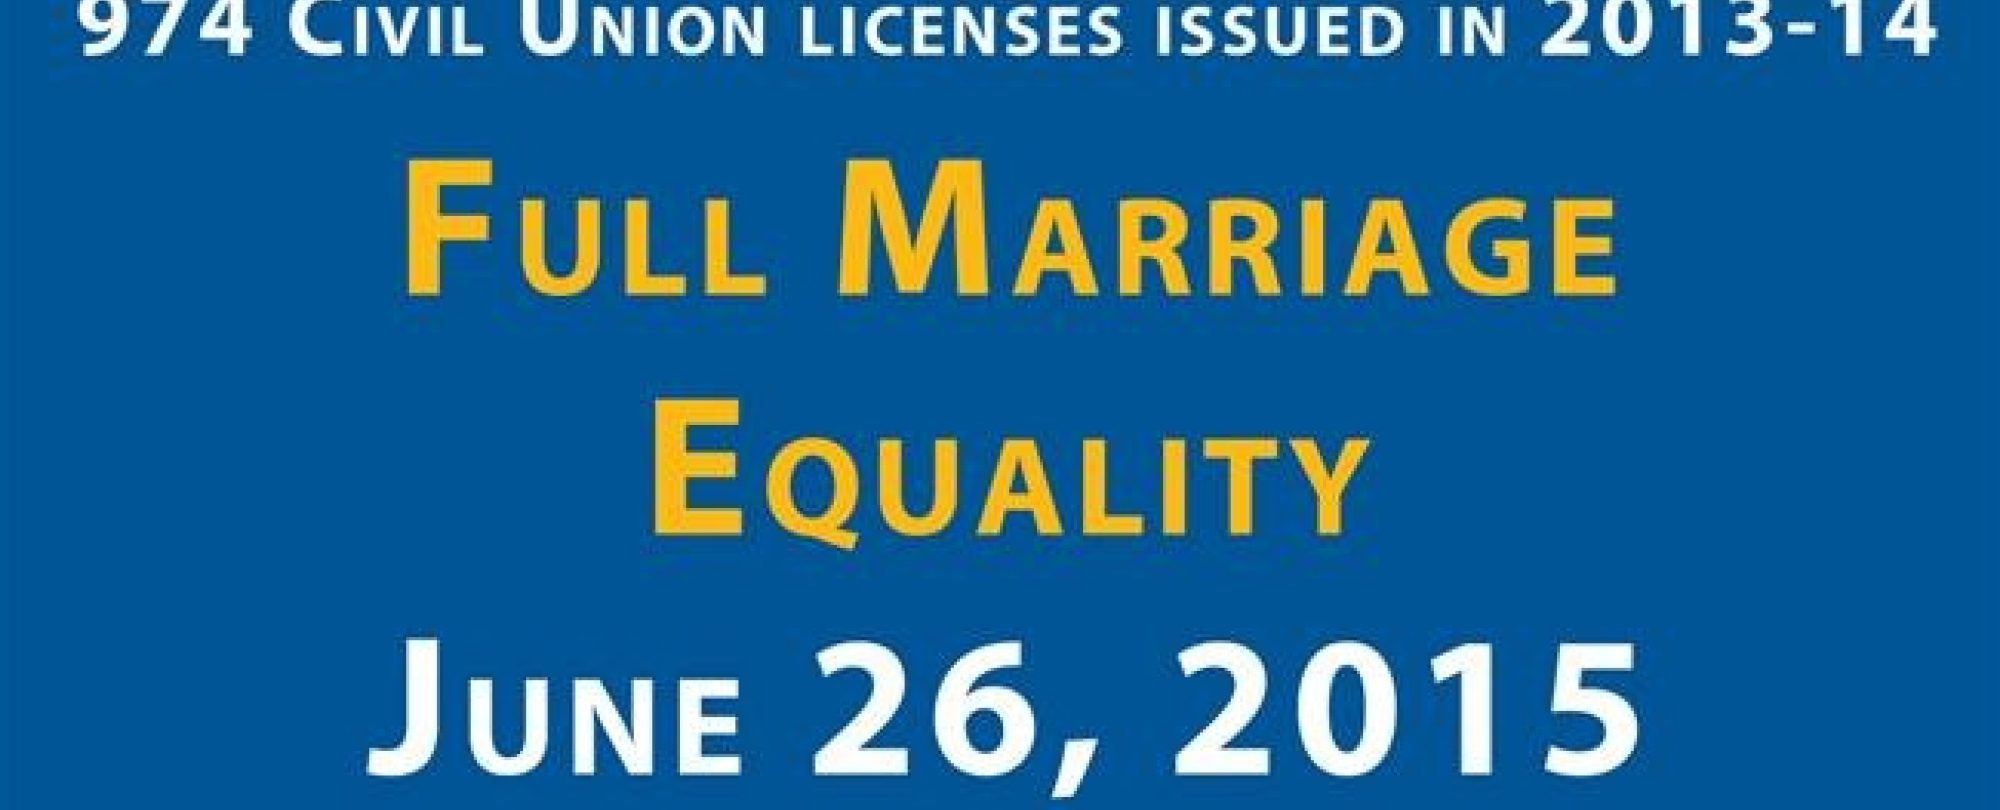 974 civil union licenses issued in 2013-2014 and full marriage equality on June 26, 2015